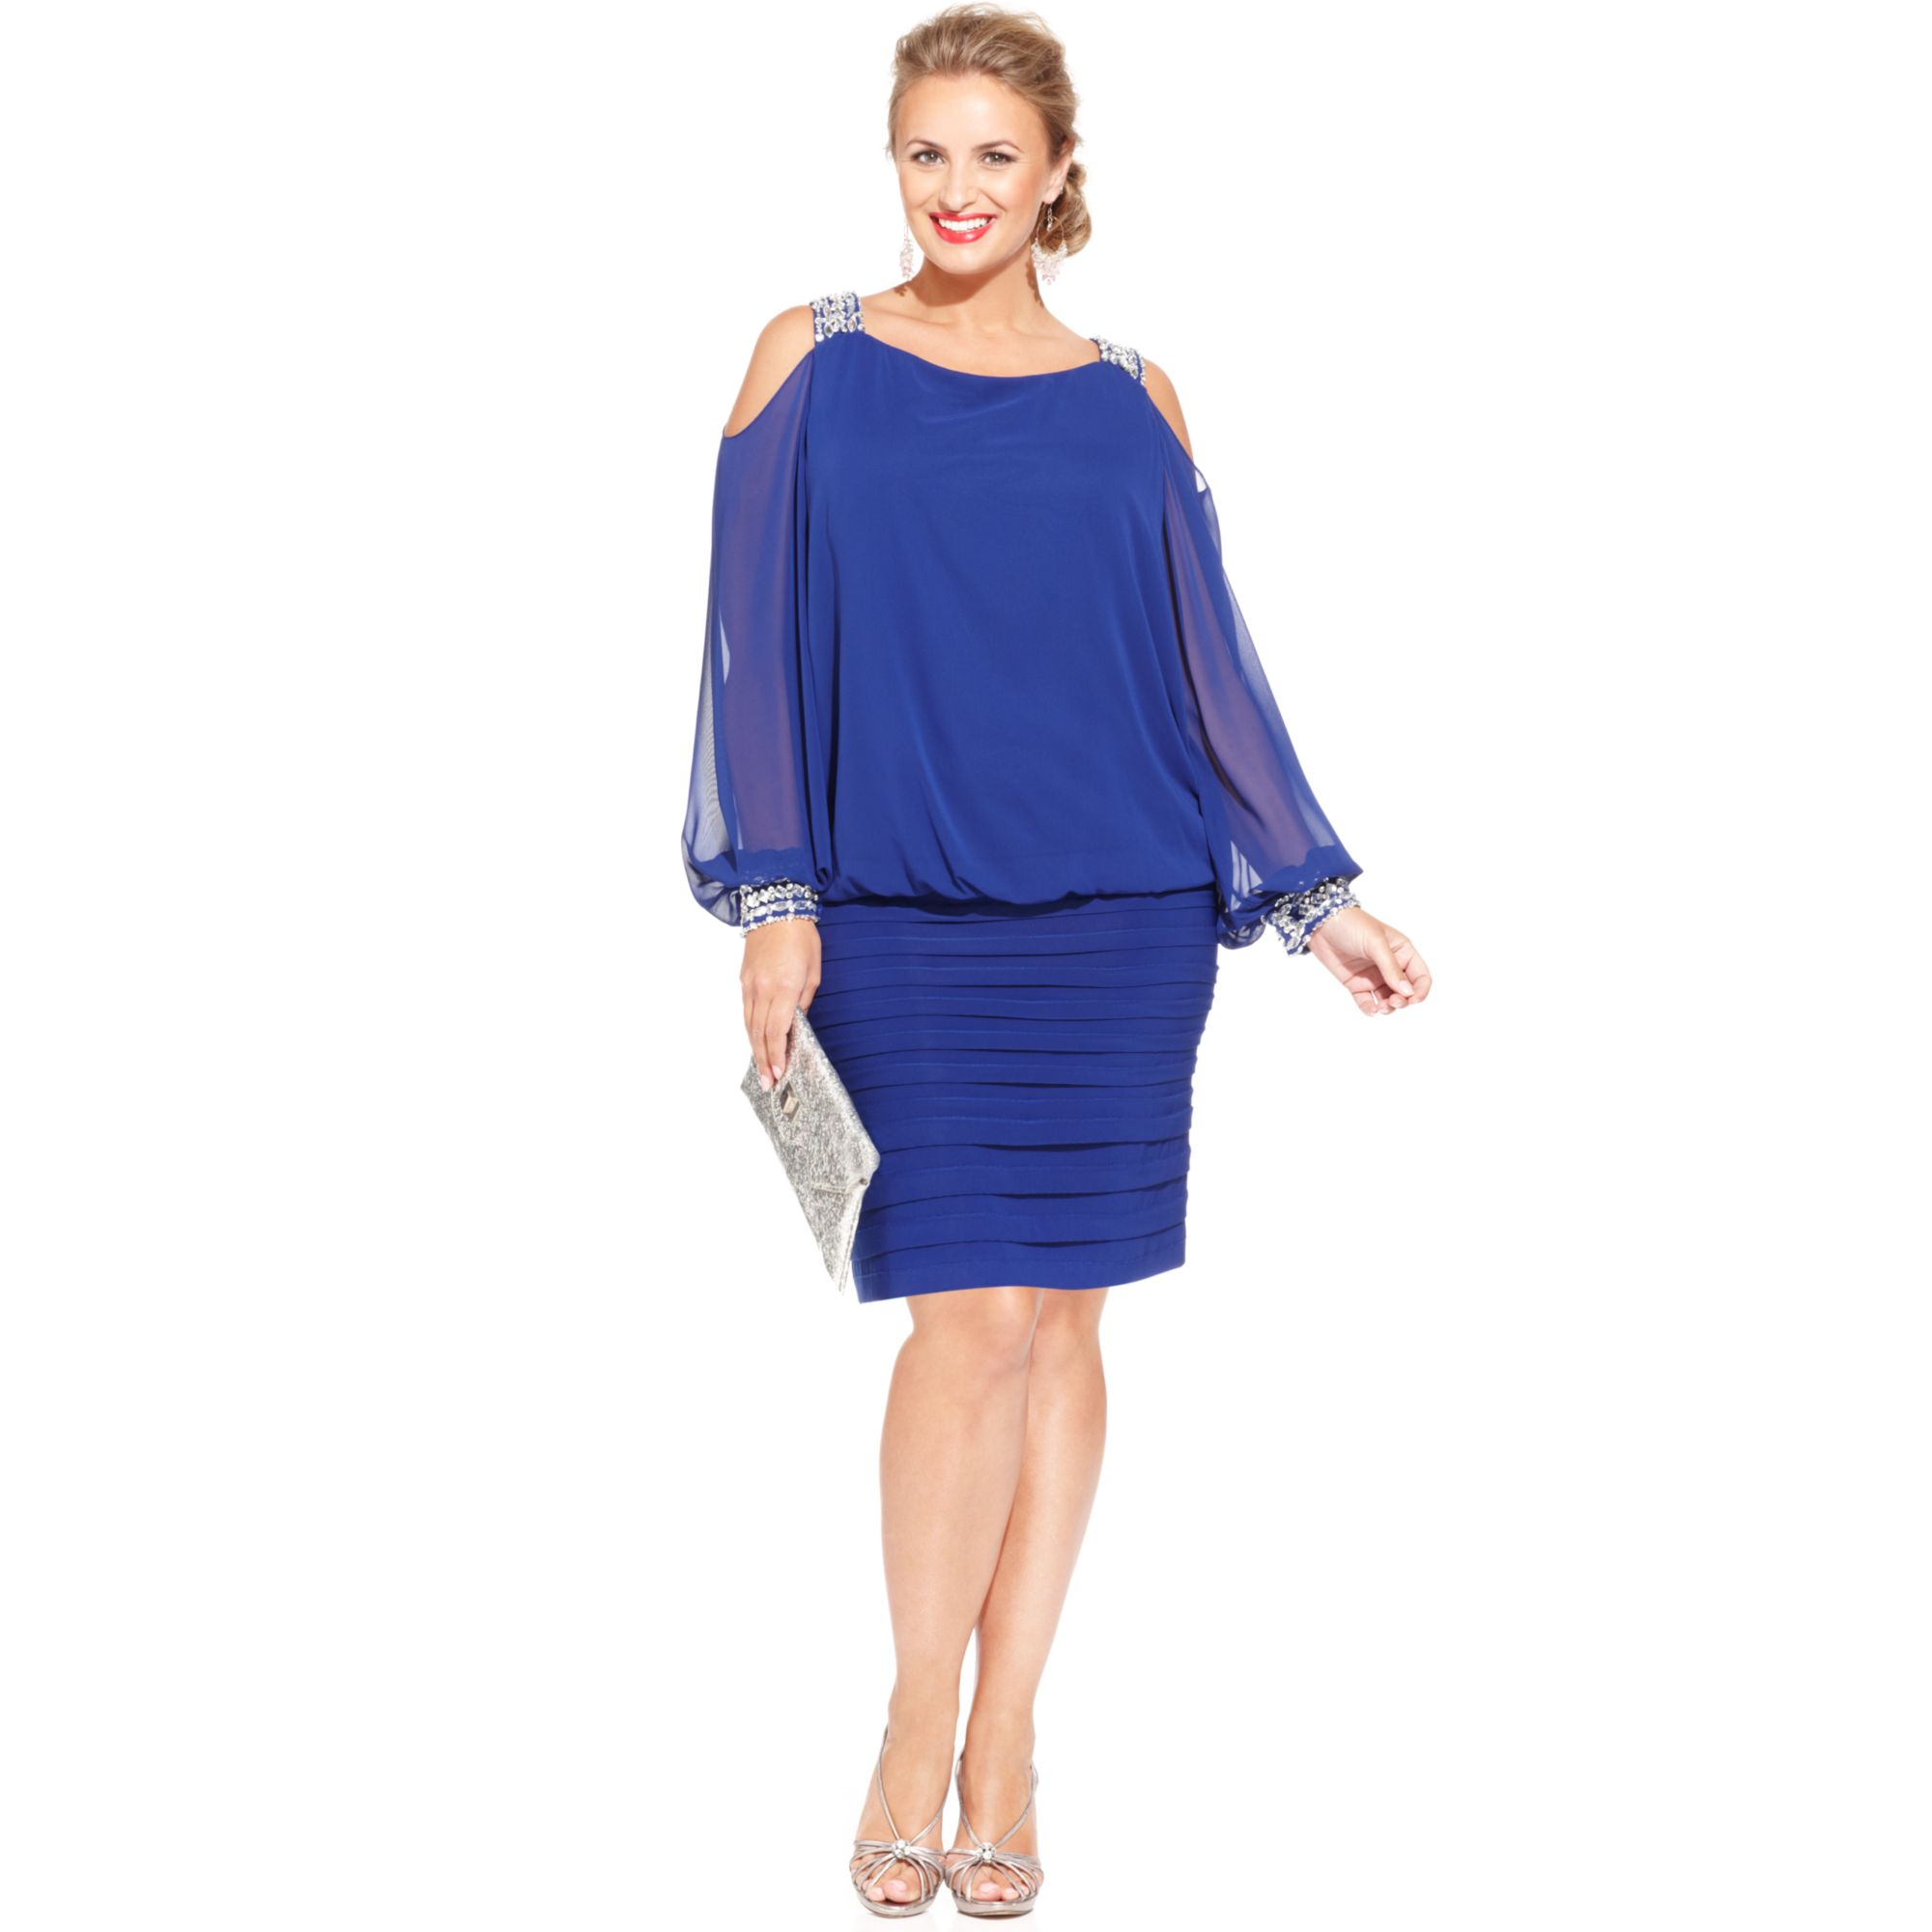 betsy adam plus size cold shoulder embellished blouson dress in blue royal lyst. Black Bedroom Furniture Sets. Home Design Ideas